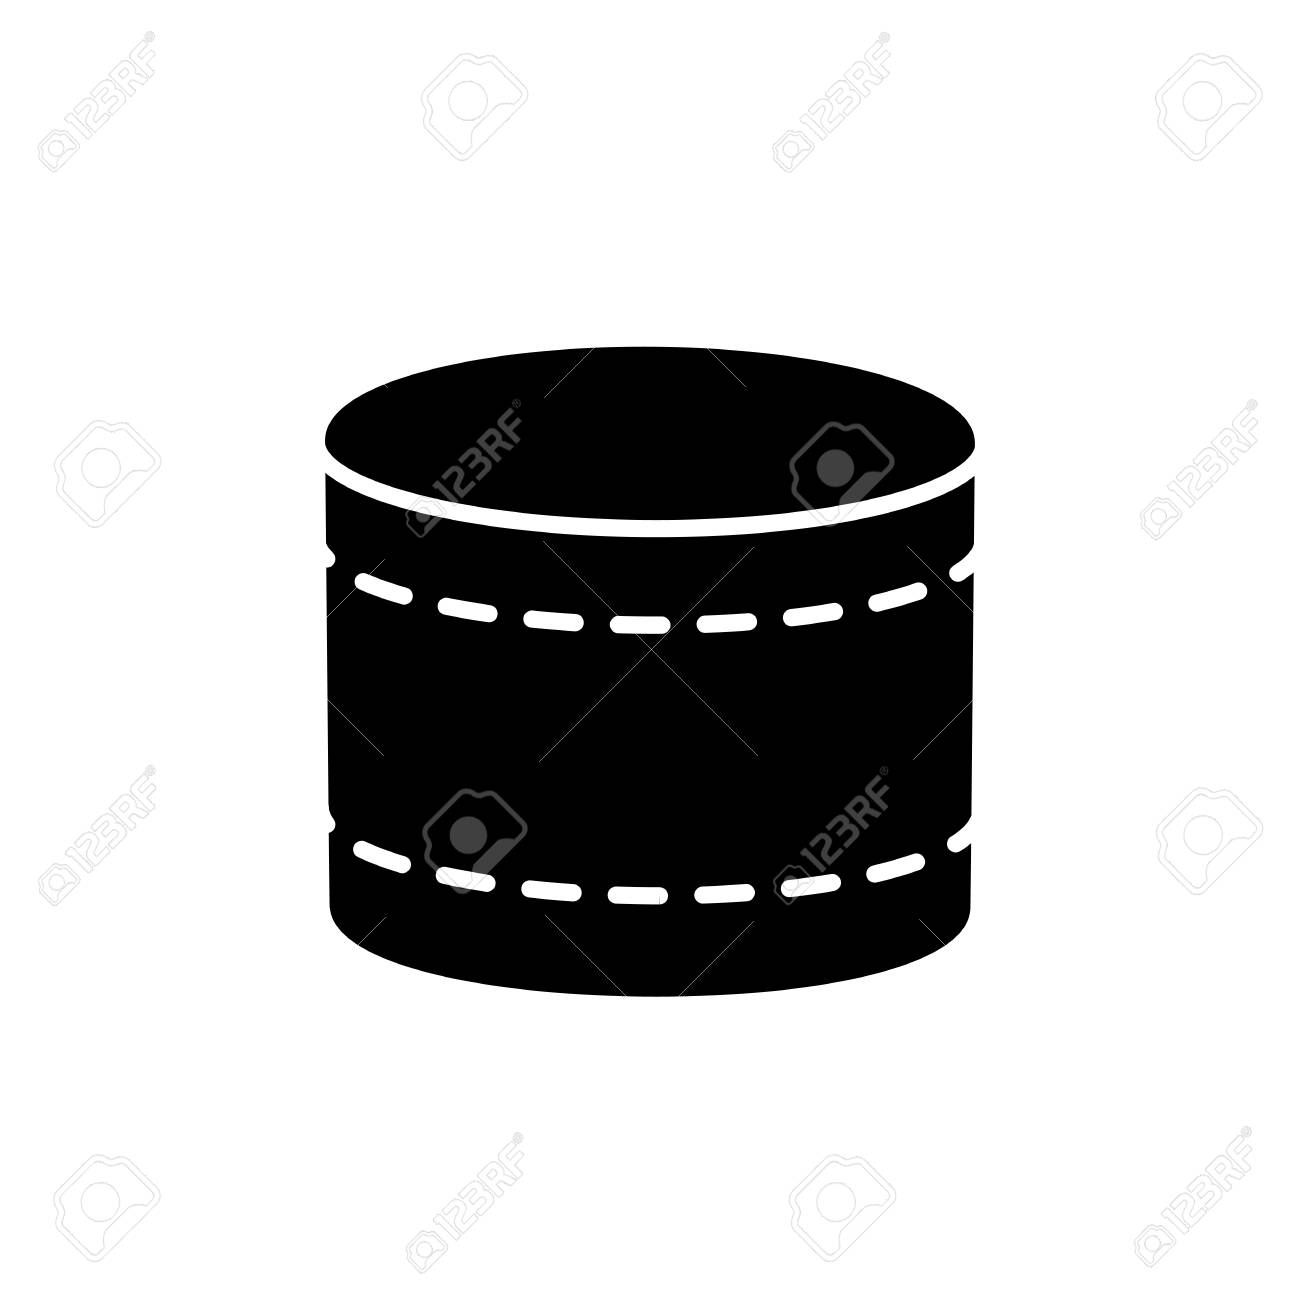 Black White Vector Illustration Of Round Fabric Ottoman Flat Royalty Free Cliparts Vectors And Stock Illustration Image 110862357